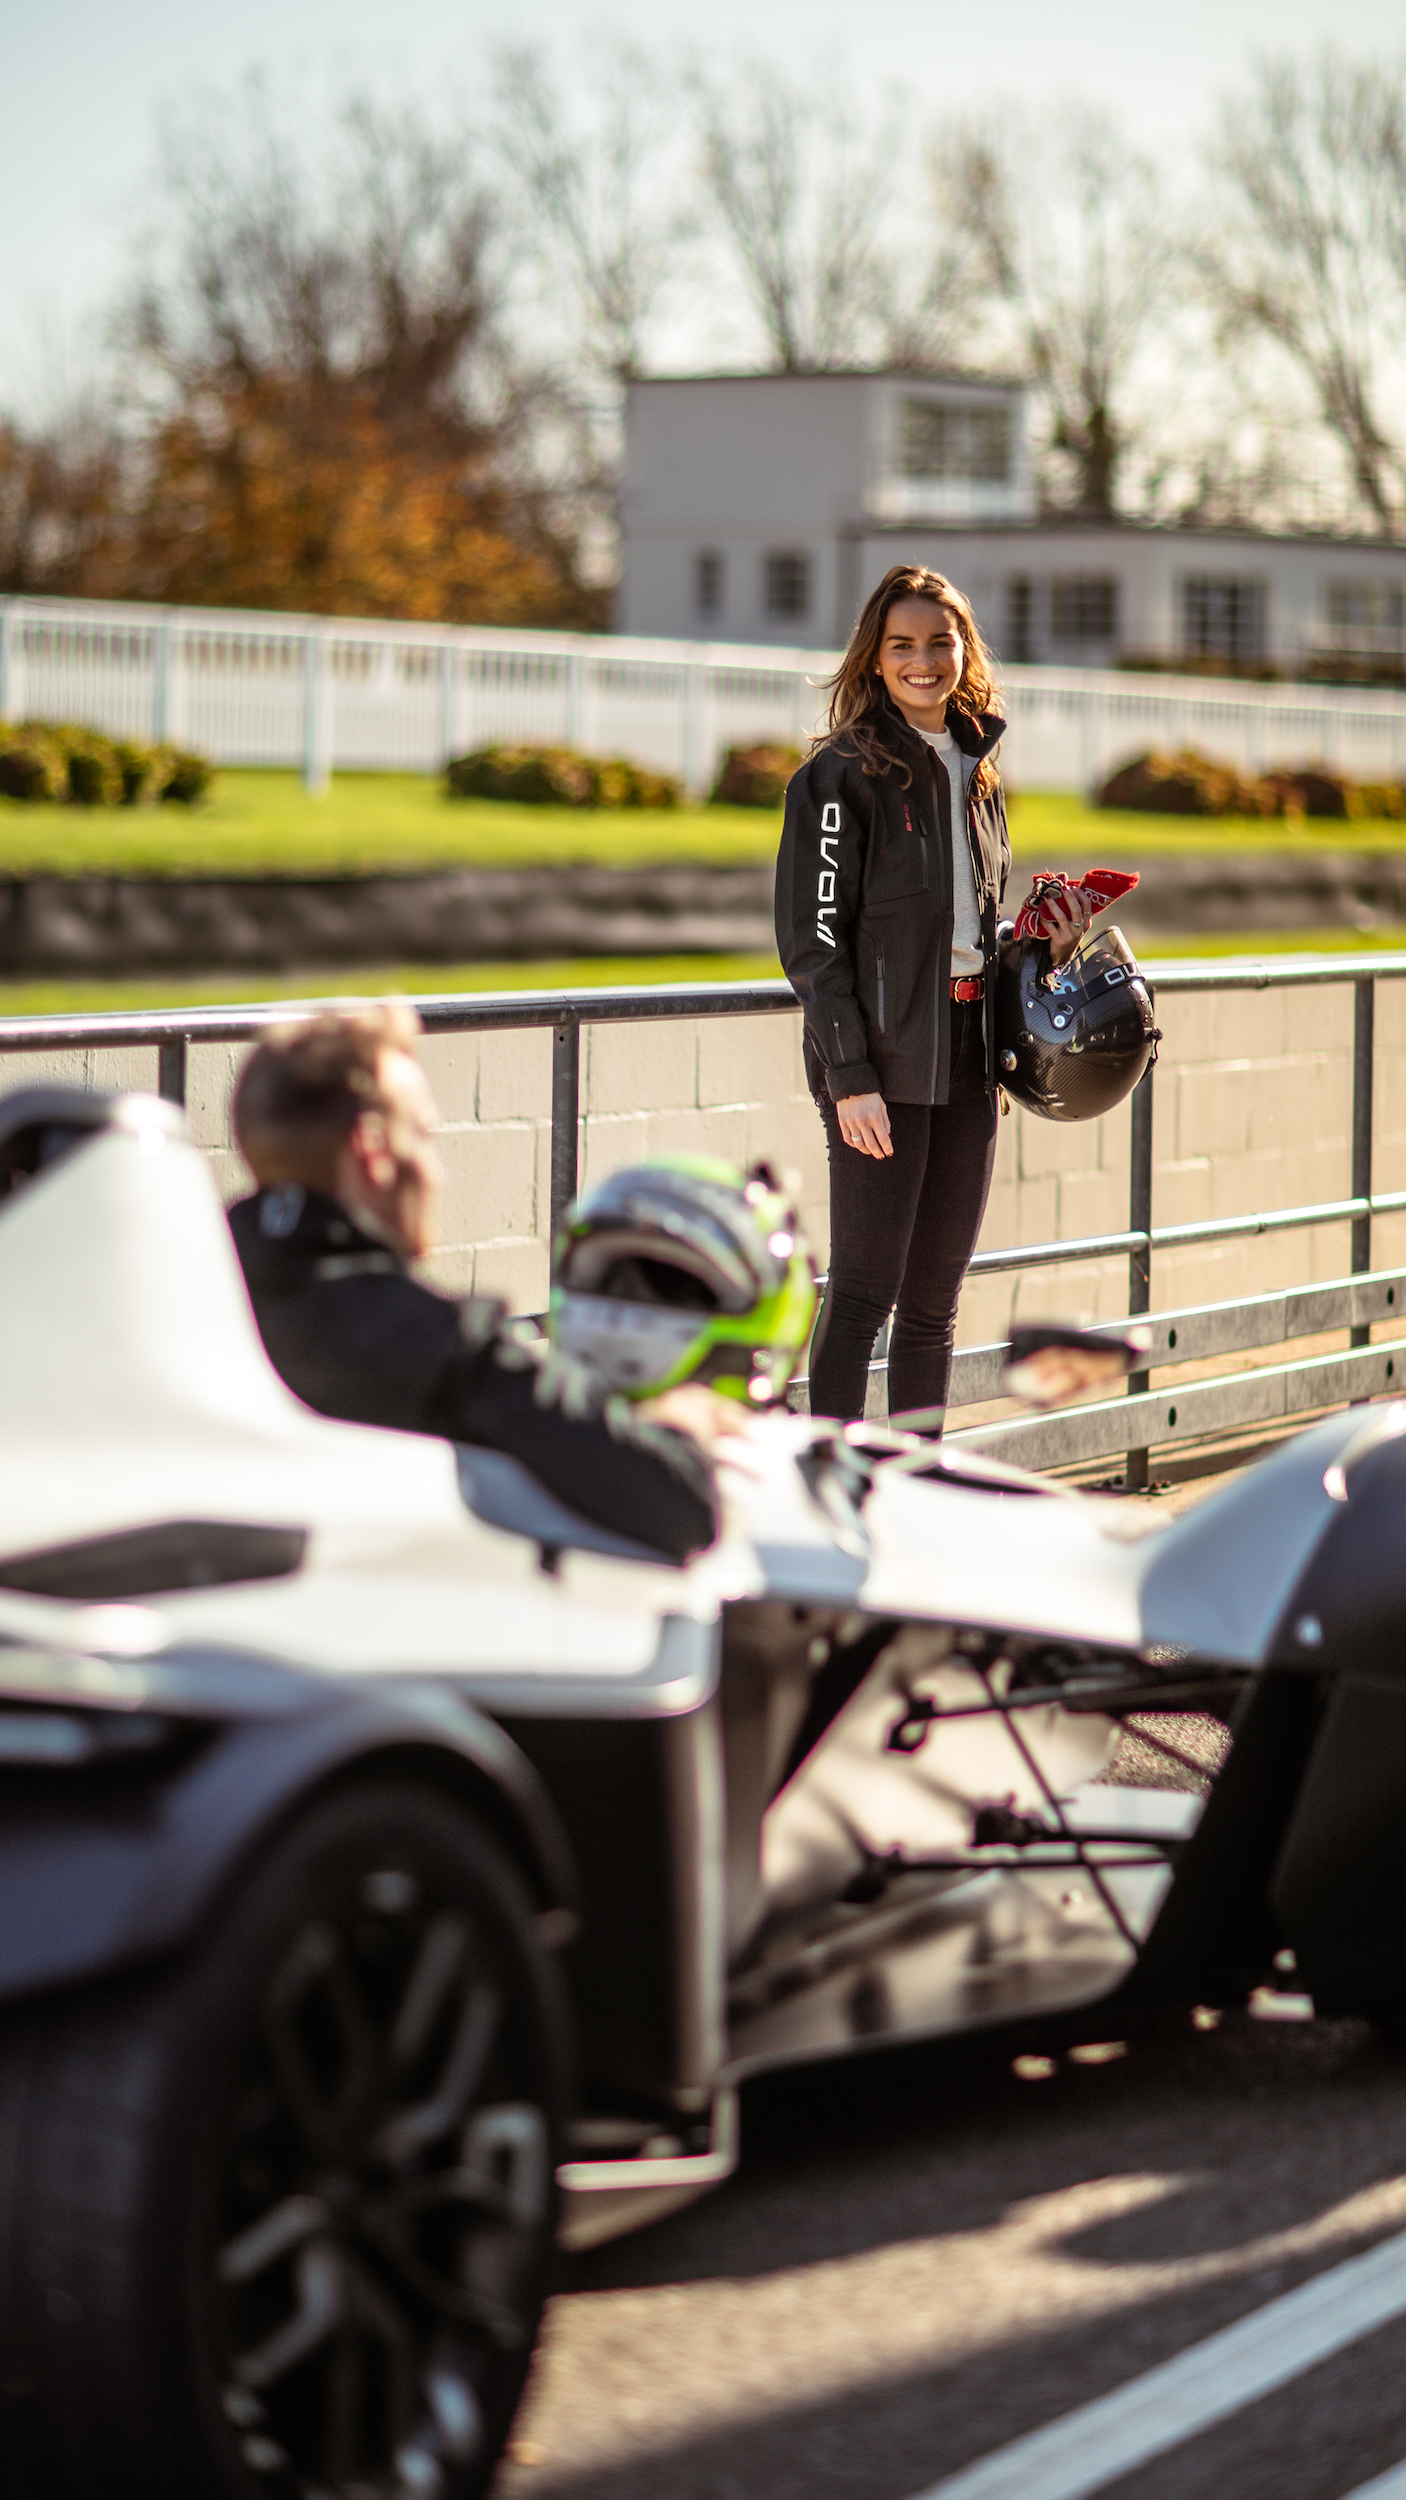 Couple preparing for a track day with BAC Mono